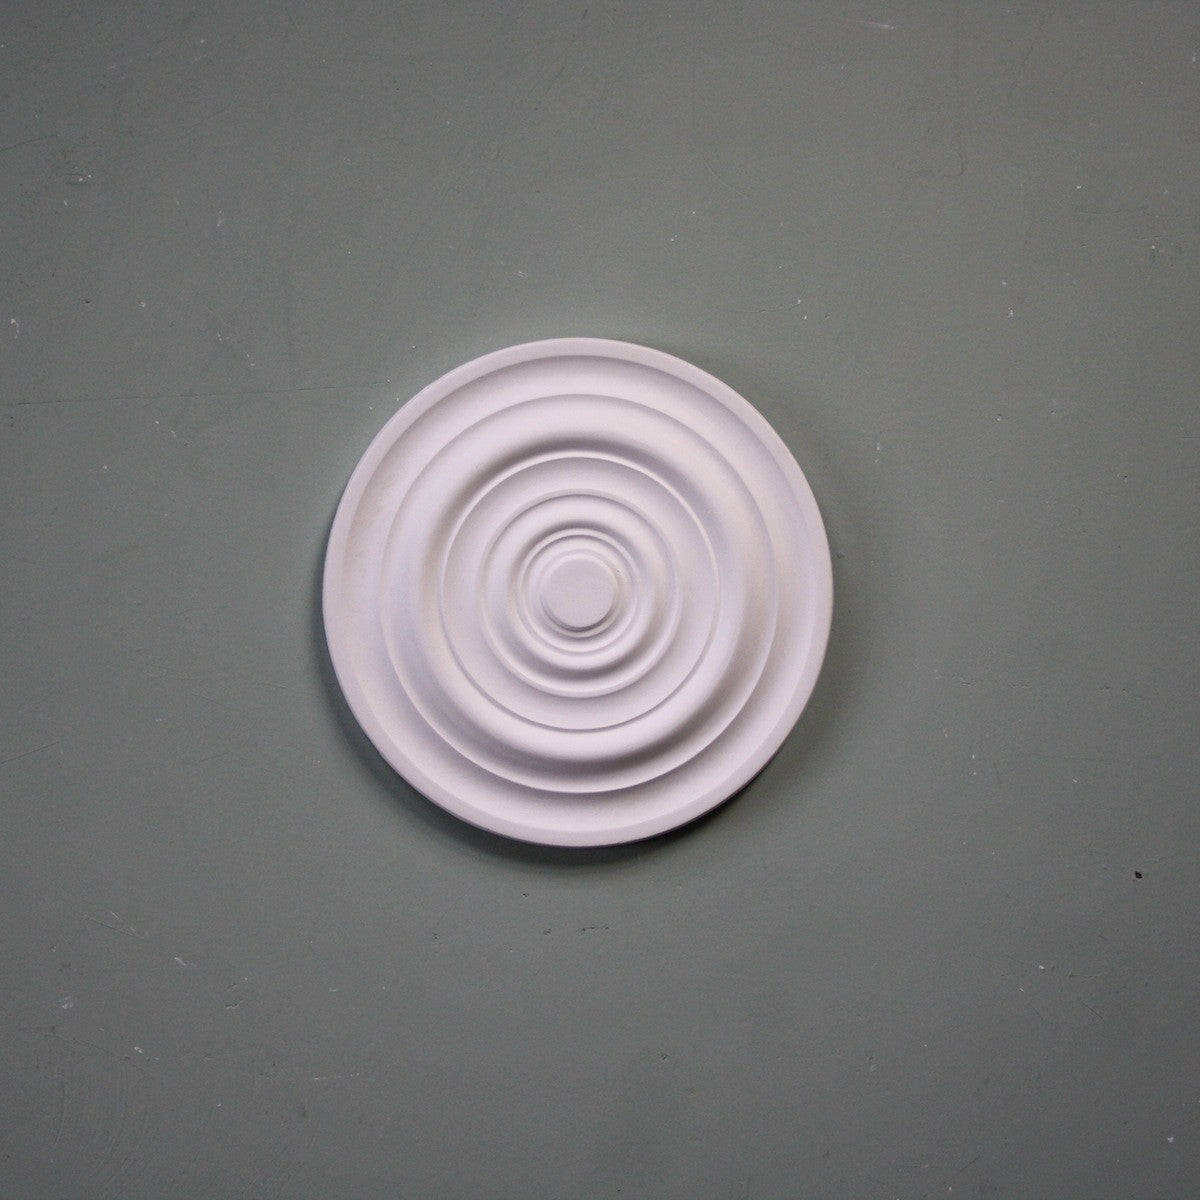 Small Plaster Ceiling Rose 230mm dia. SPR007 - PlasterCeilingRoses.com